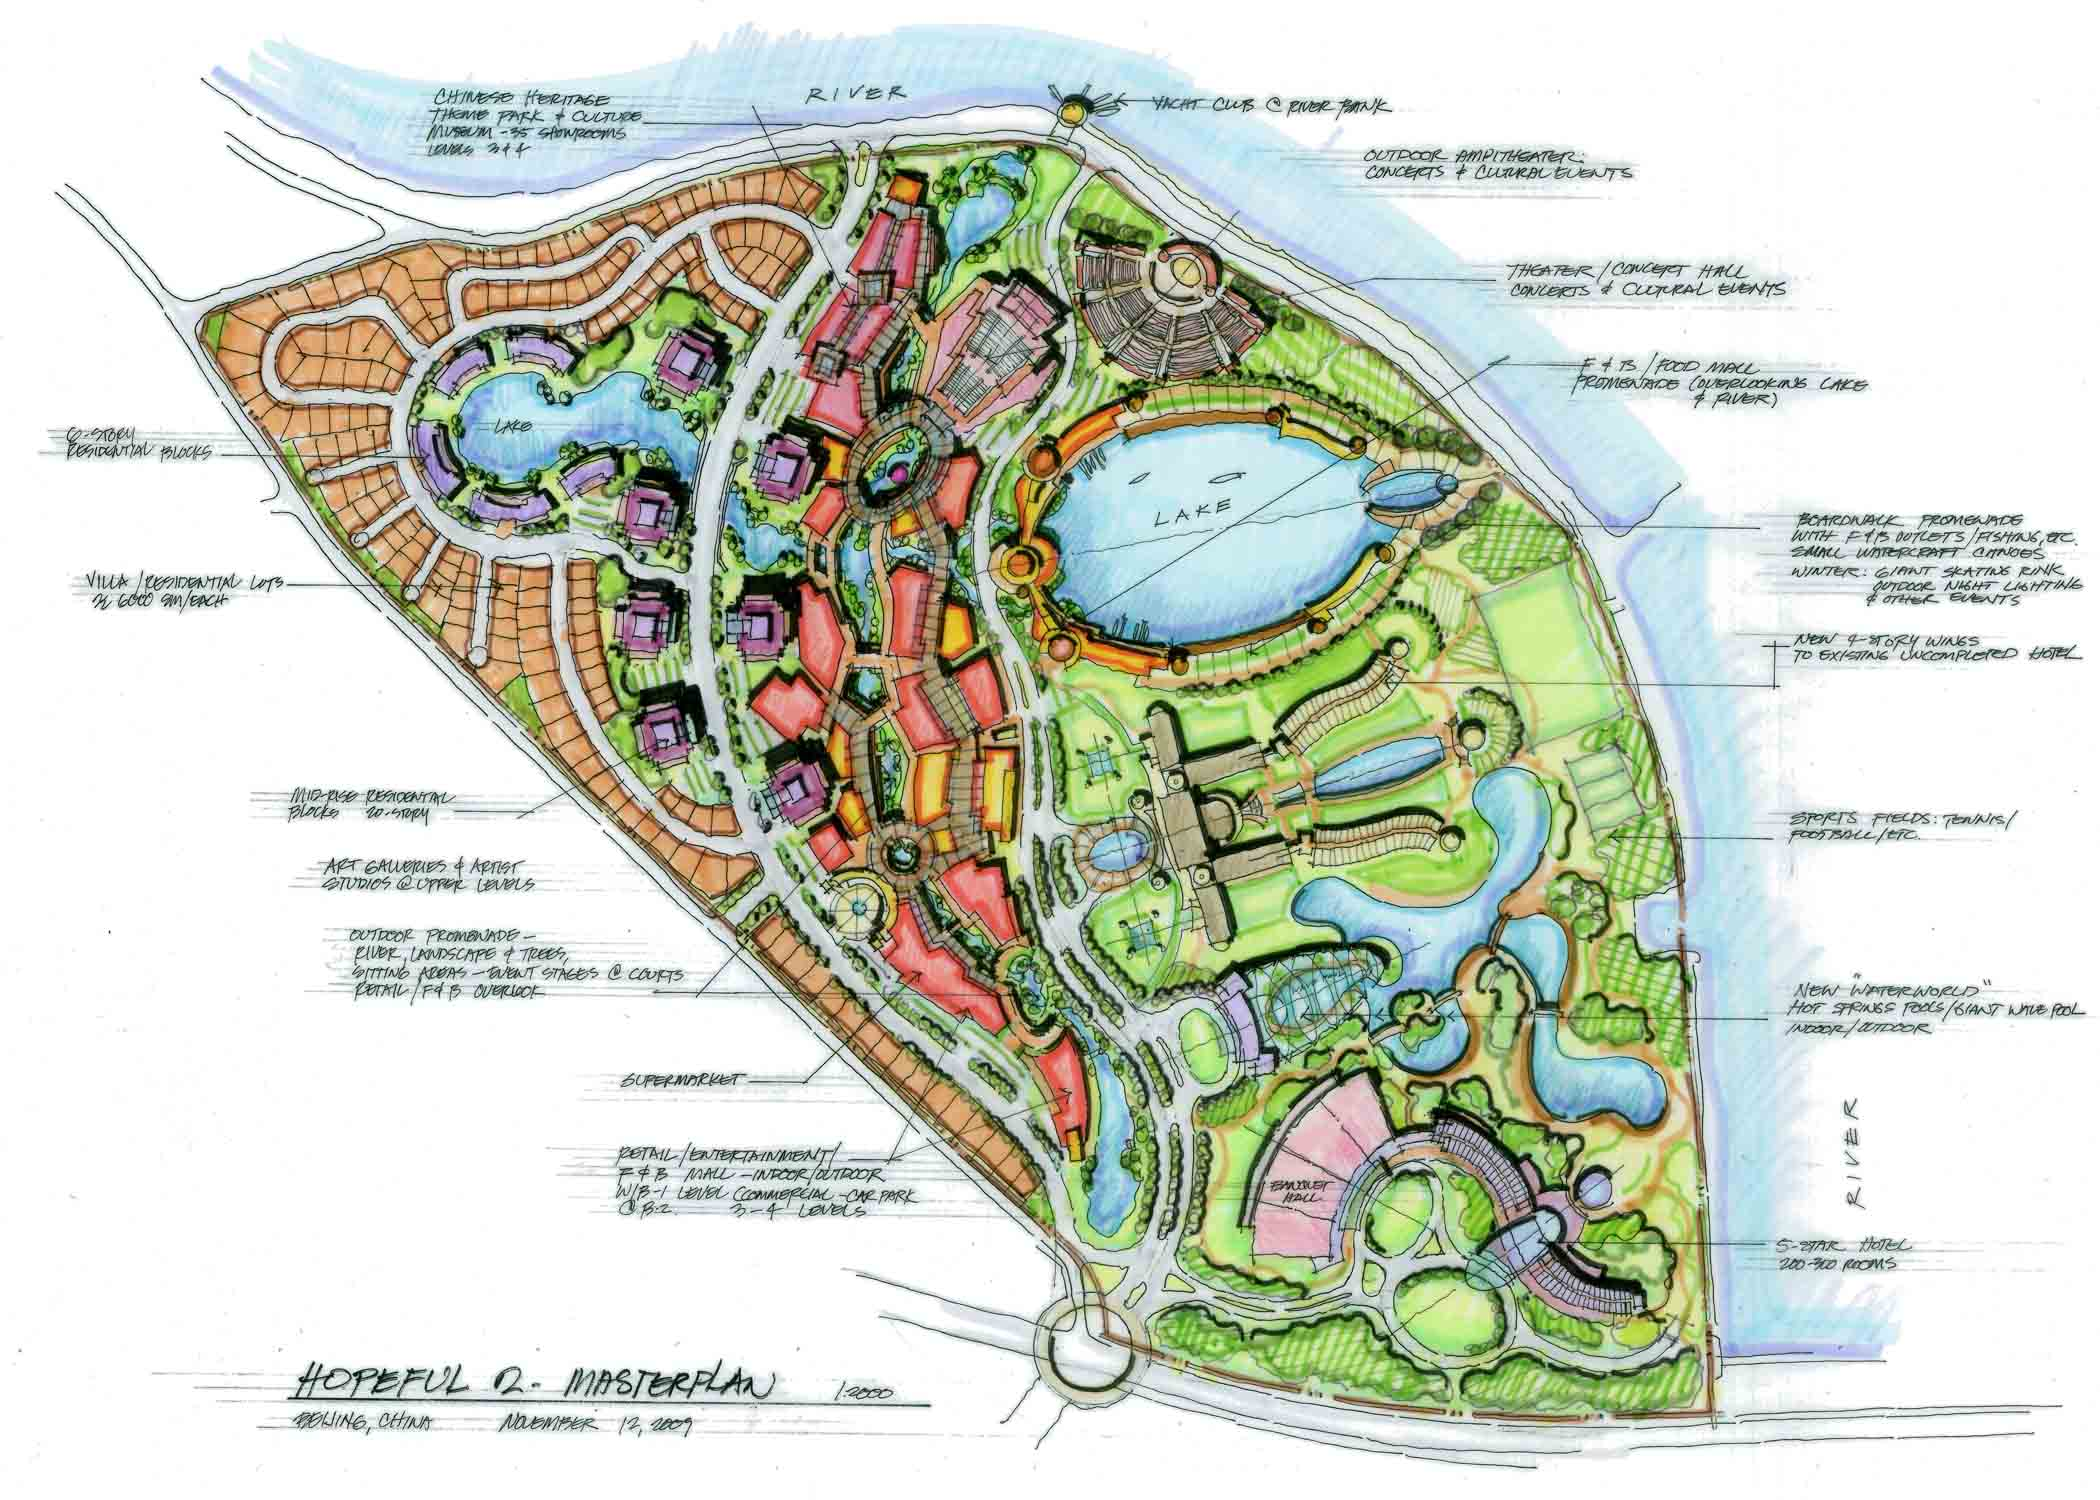 Masterplanning landscape pacthai international - Hotel design planning and development ebook ...